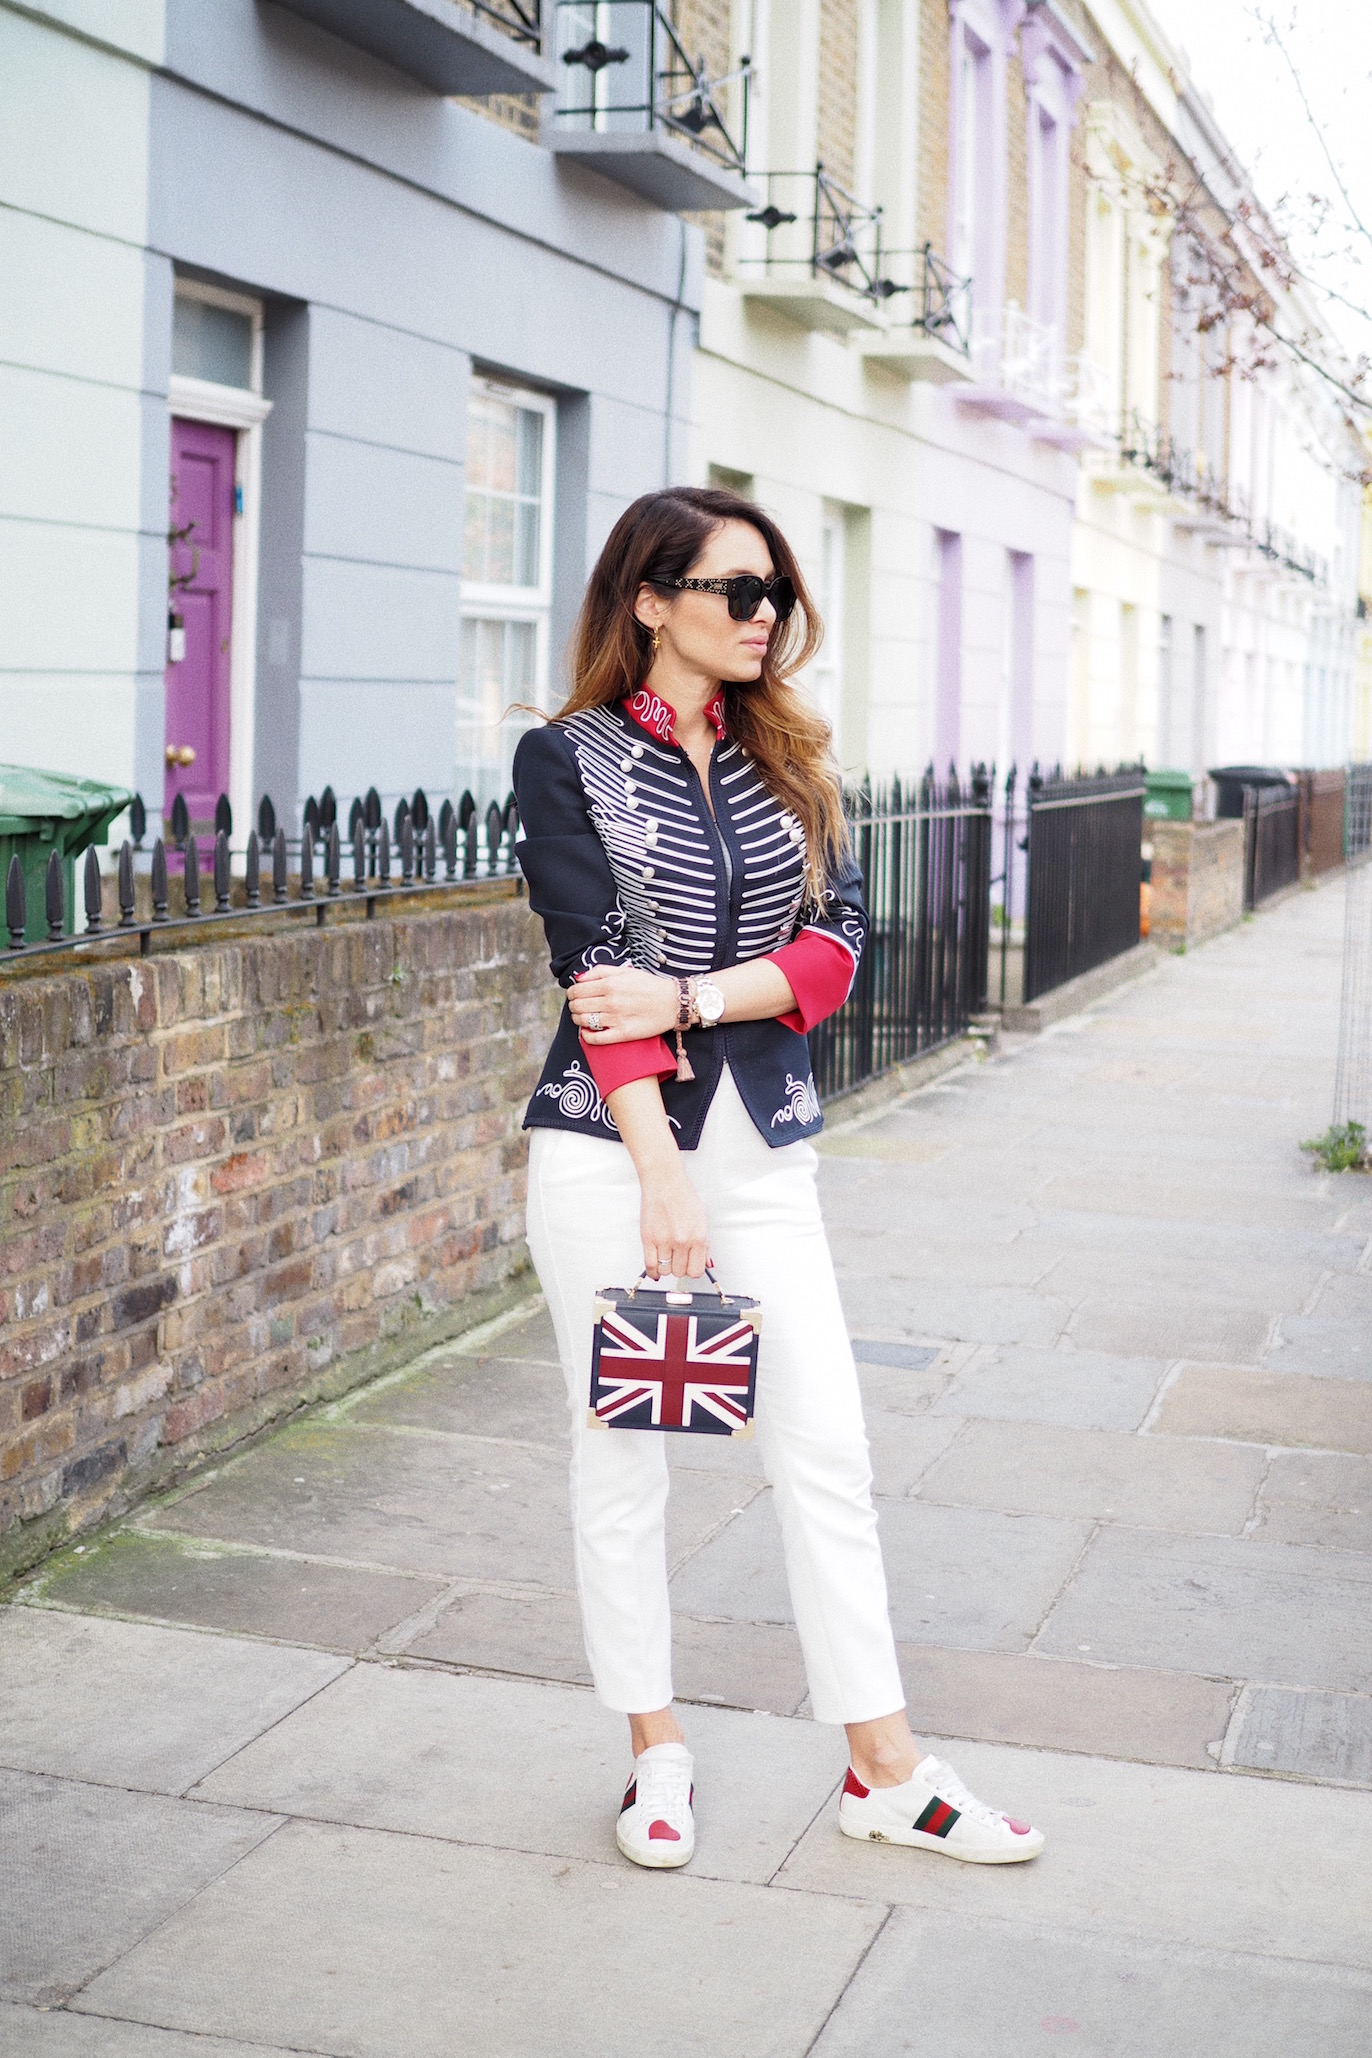 camden town london street style aspinal of london